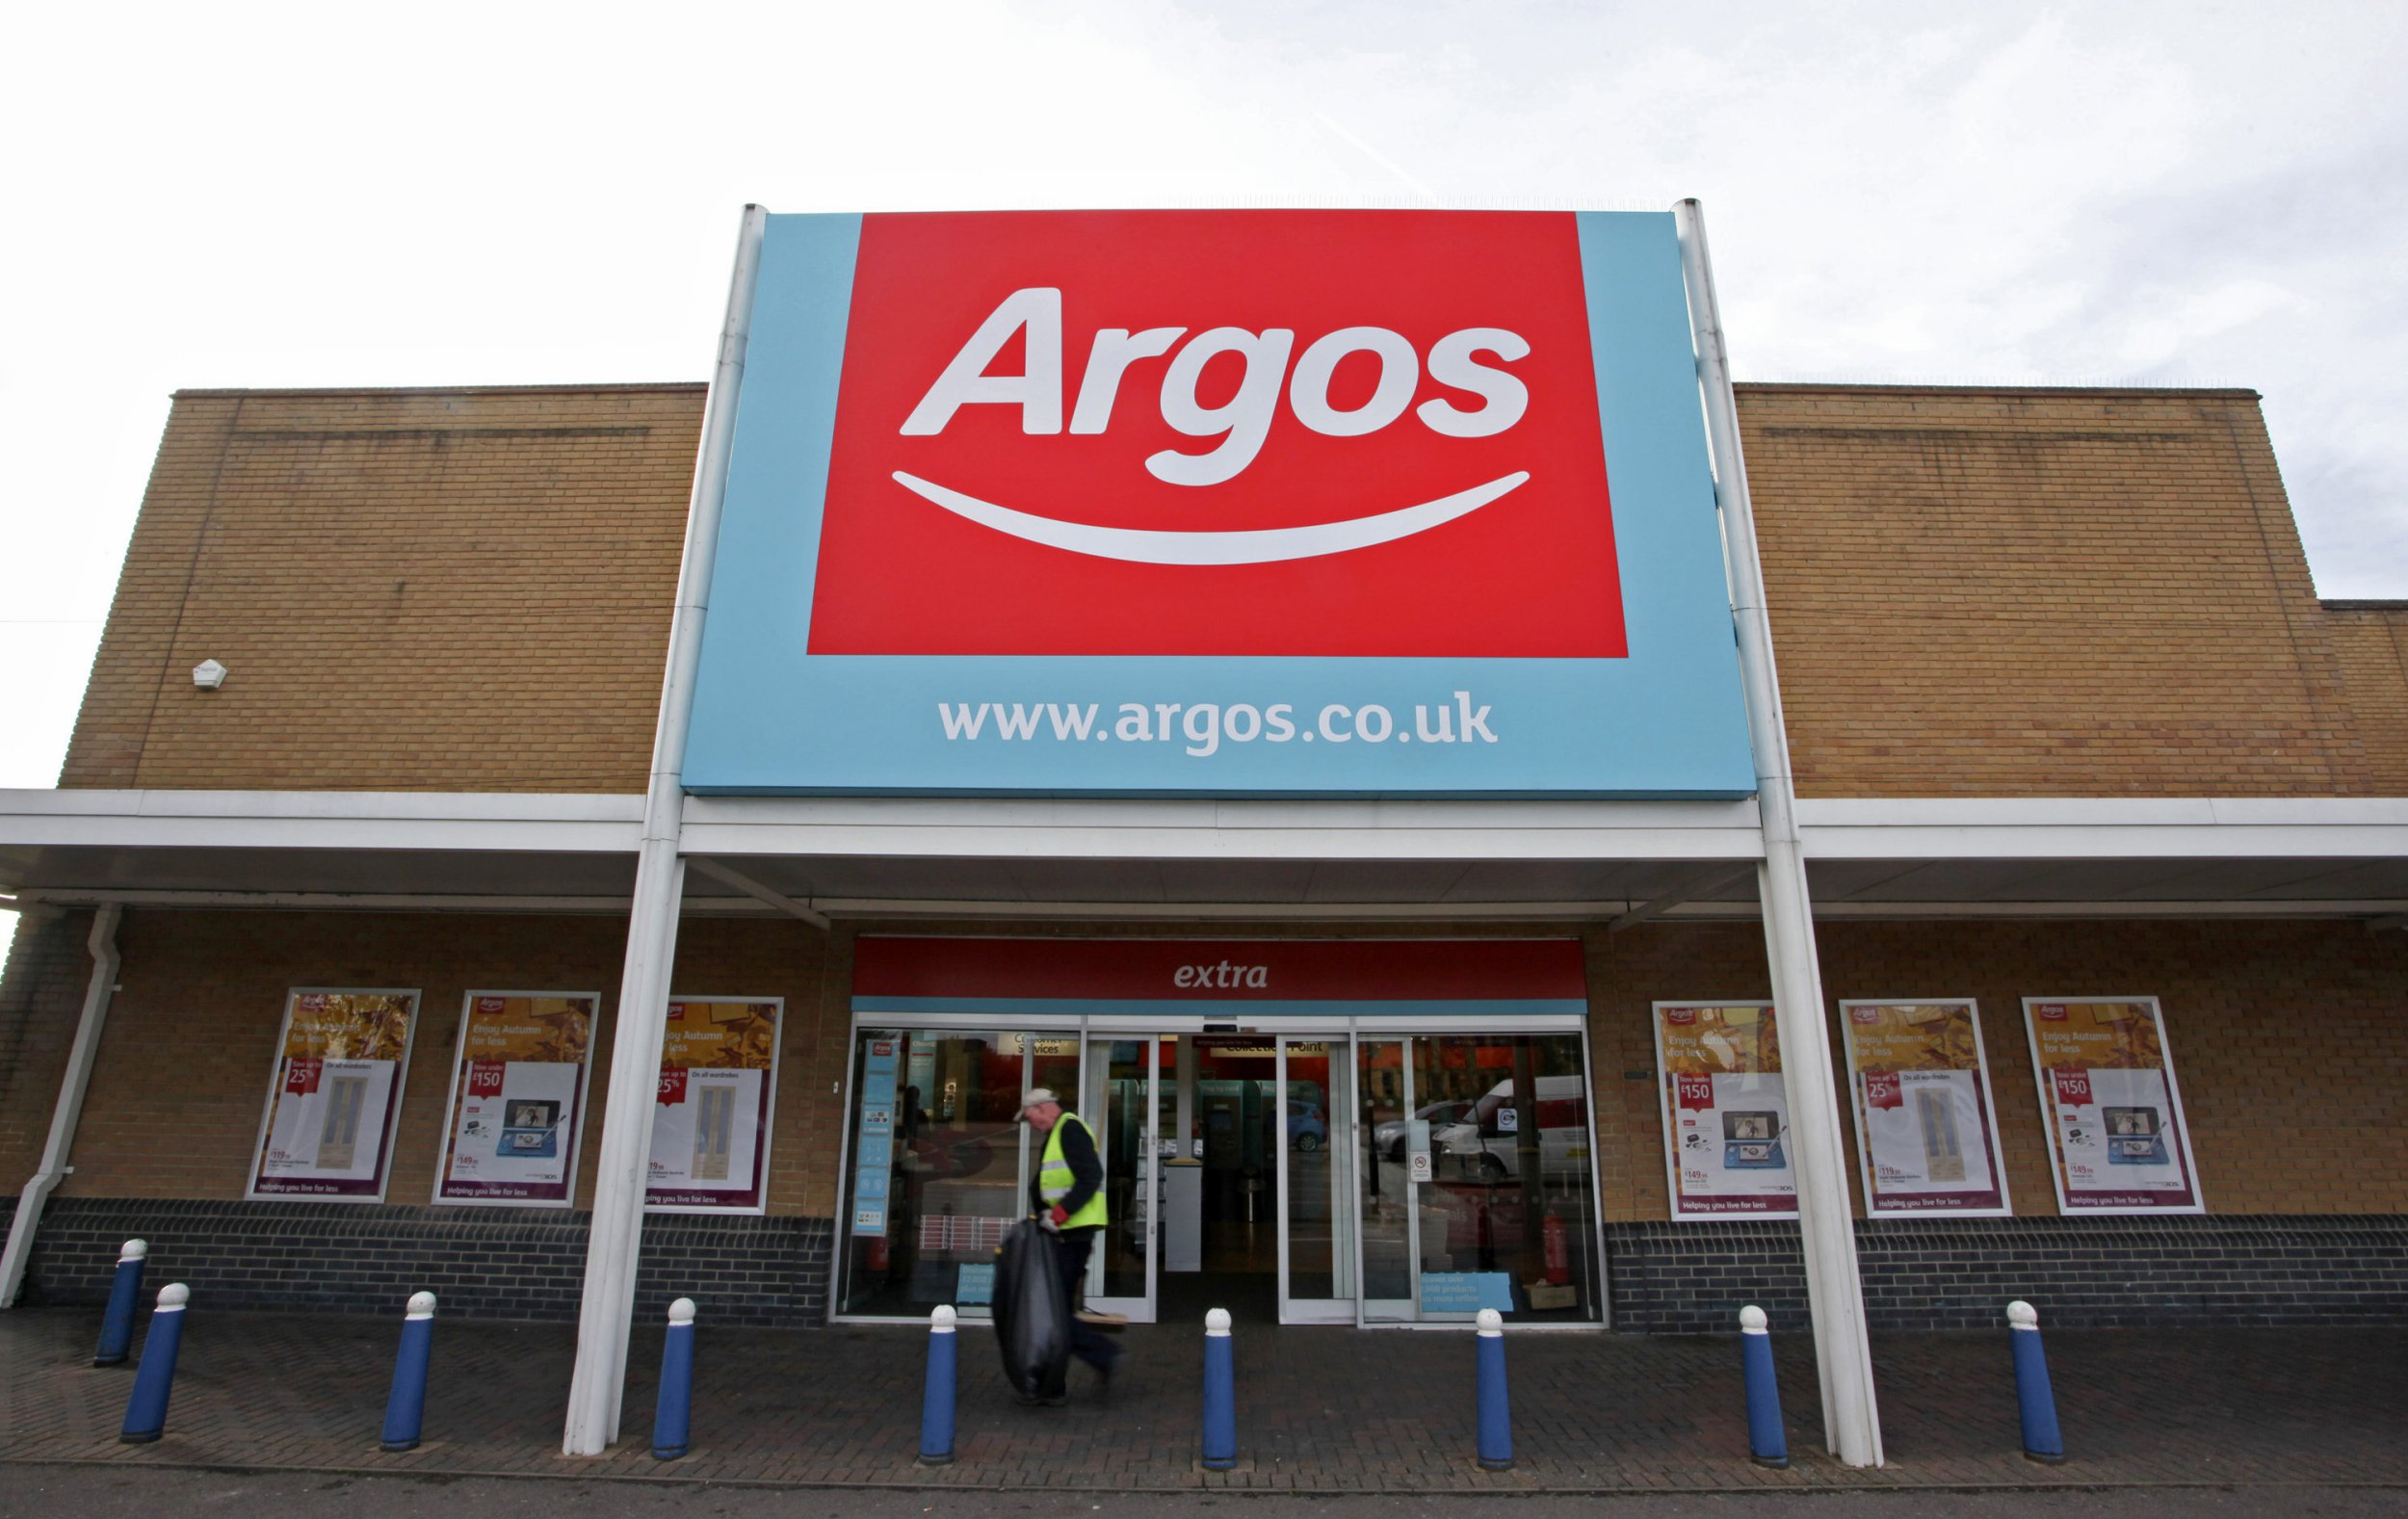 Argos opening hours for August bank holiday weekend – everything you need to know